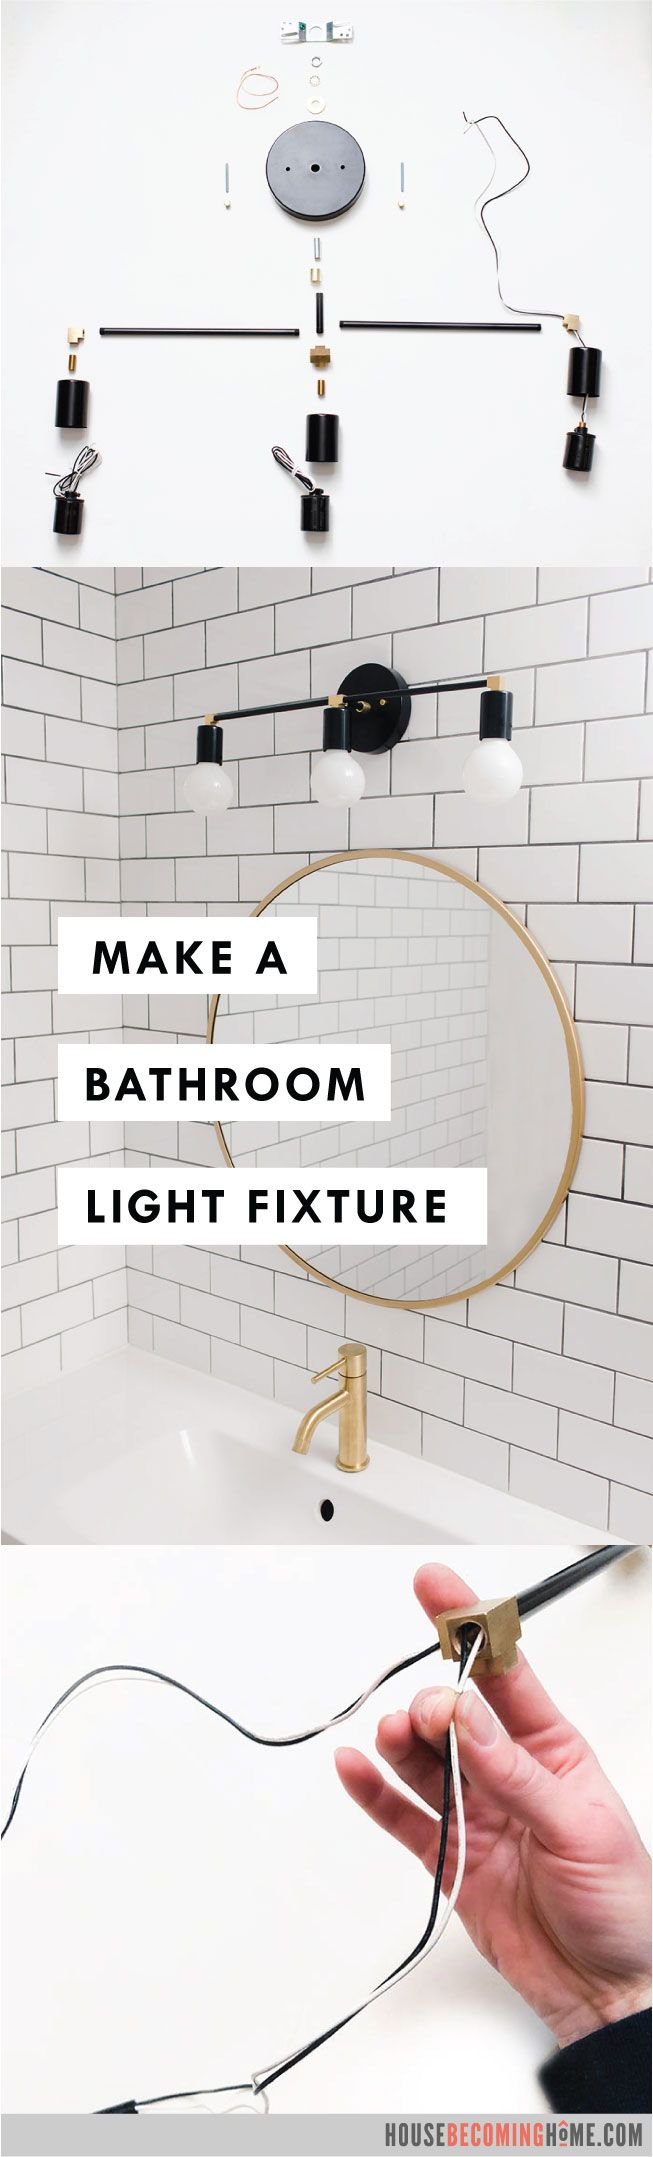 Photo of How to Make a Modern Bathroom Light Fixture – House Becoming Home